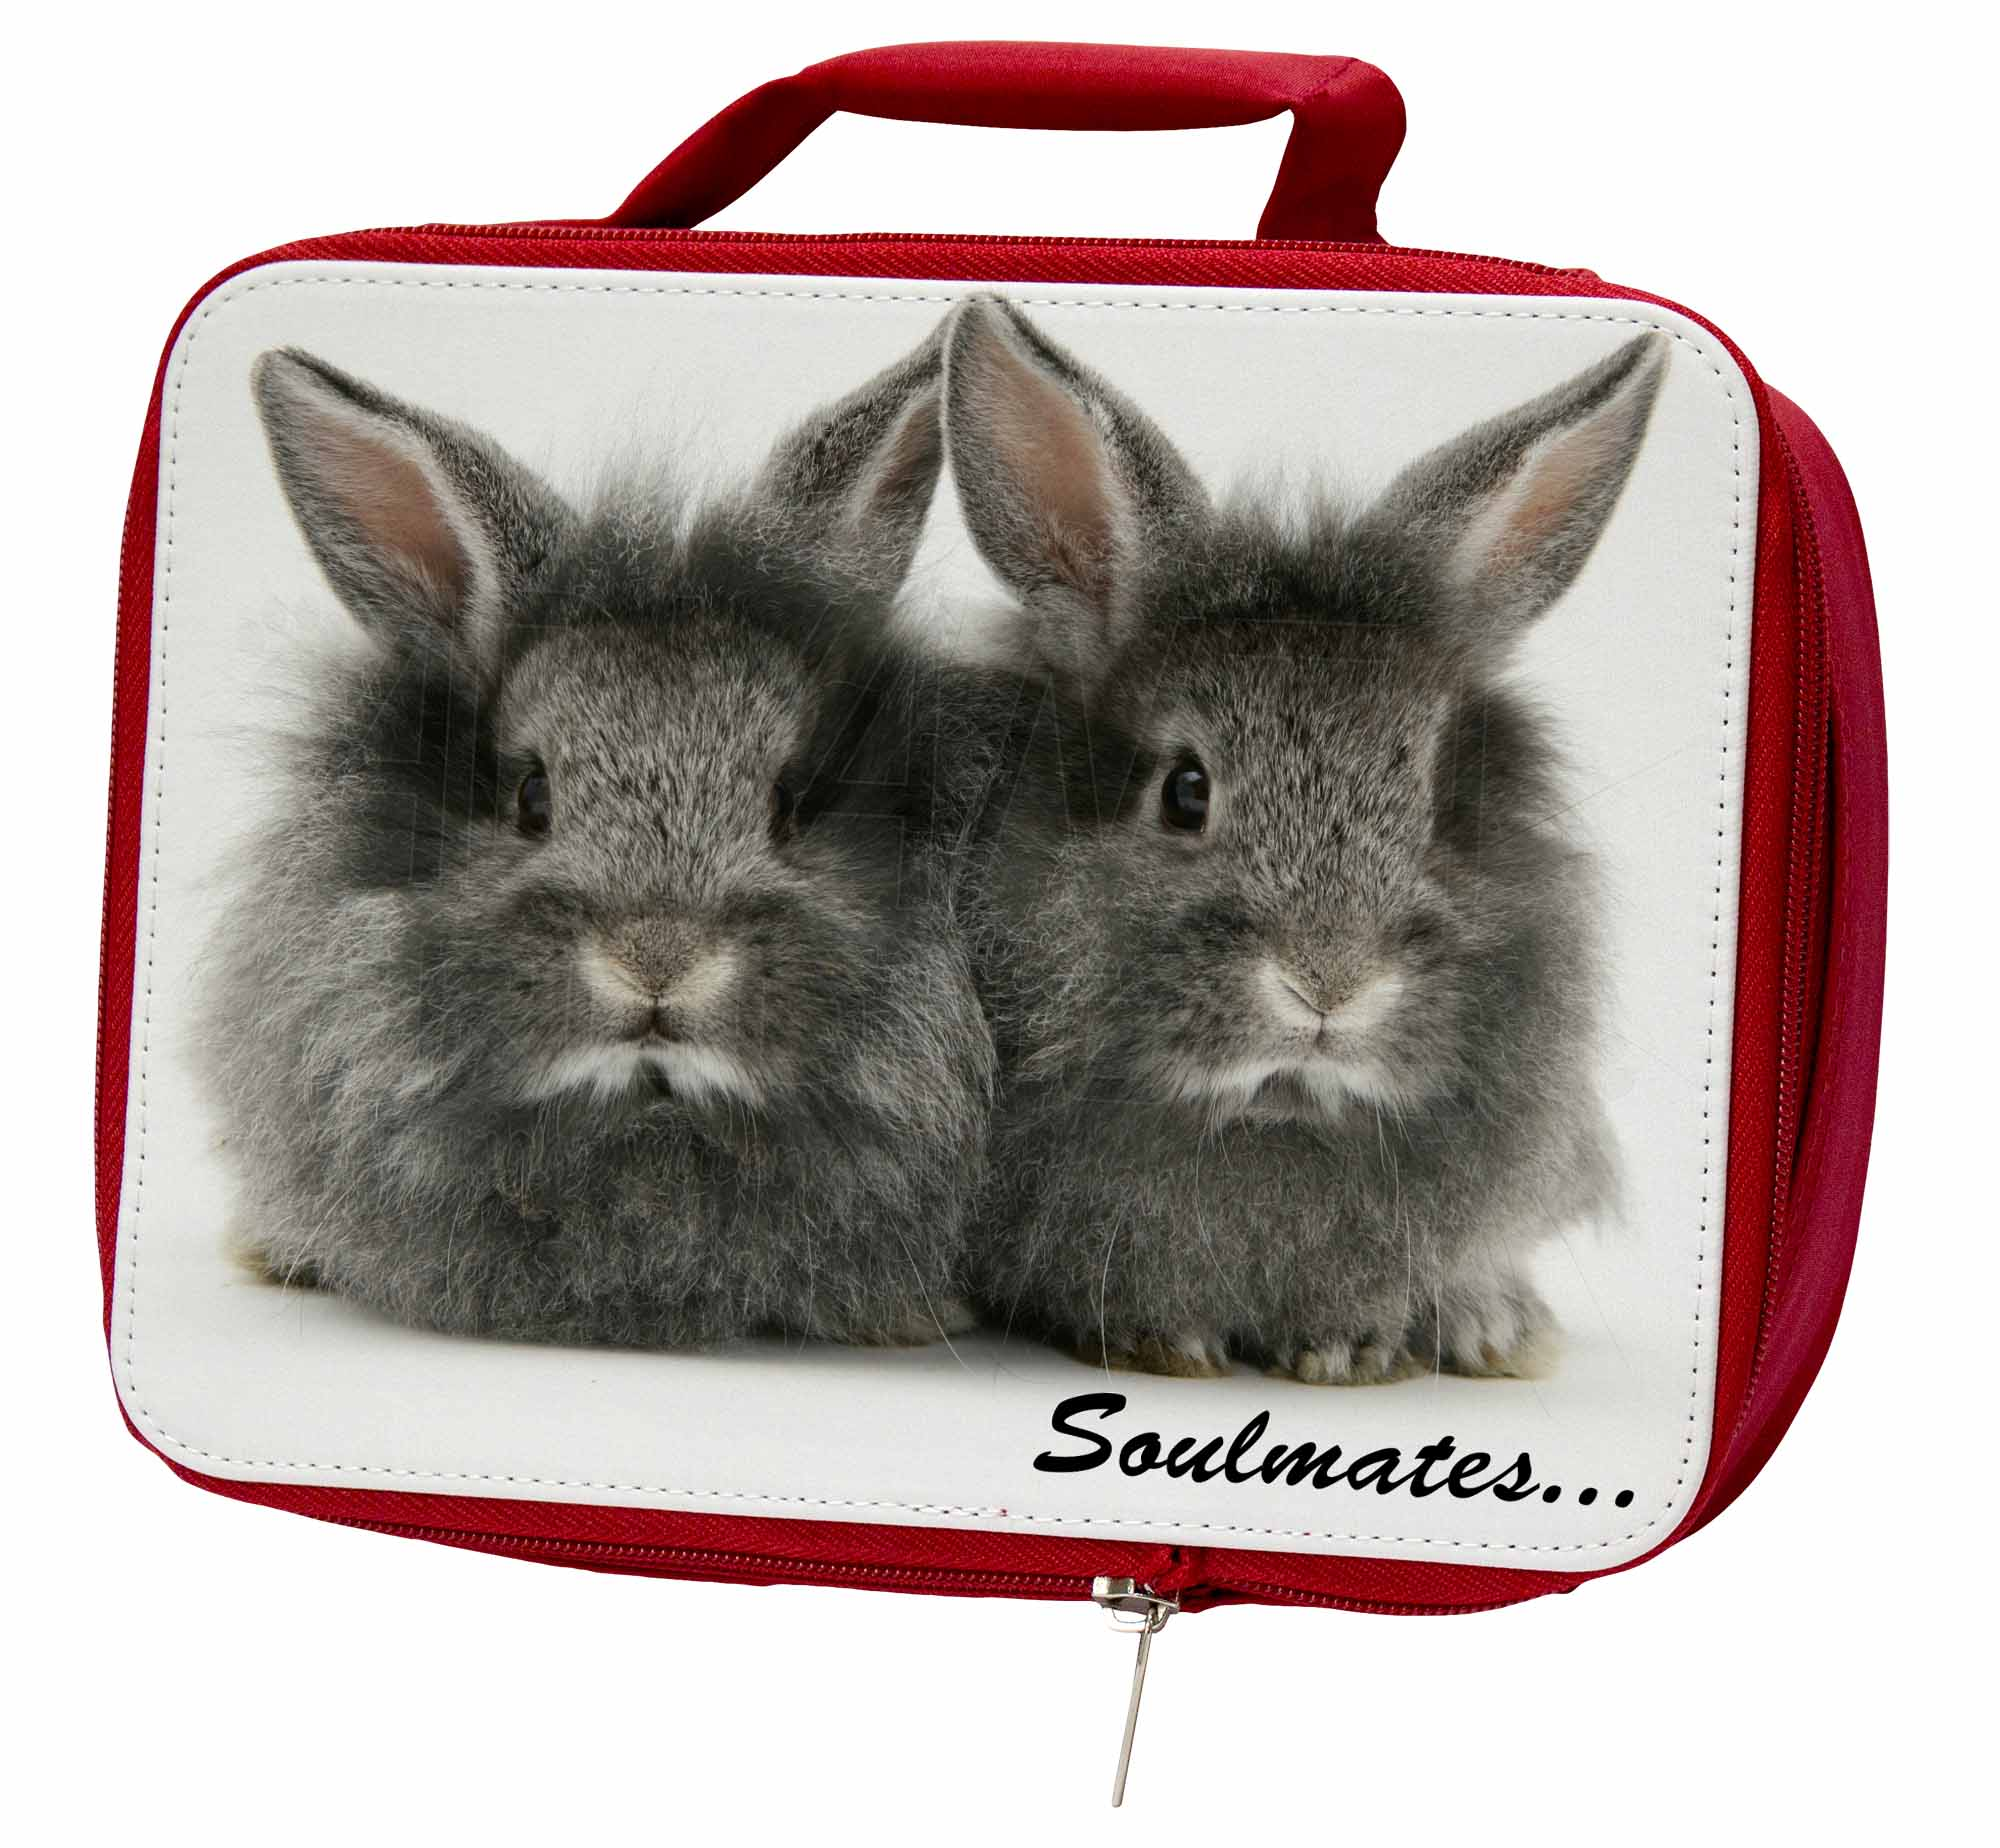 Two Silver Rabbits 'Soulmates' Insulated Red School SOUL-74LBR Lunch Box/Picnic, SOUL-74LBR School 363f9b